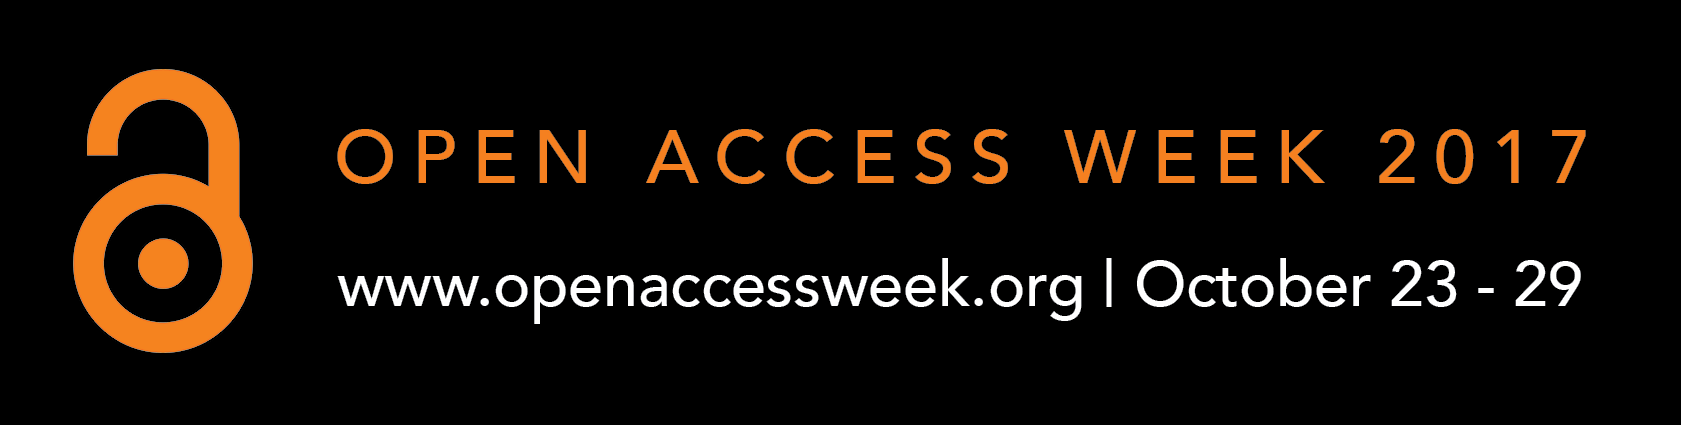 Open Access Week 2017, www.openaccessweek.org, October 23-29